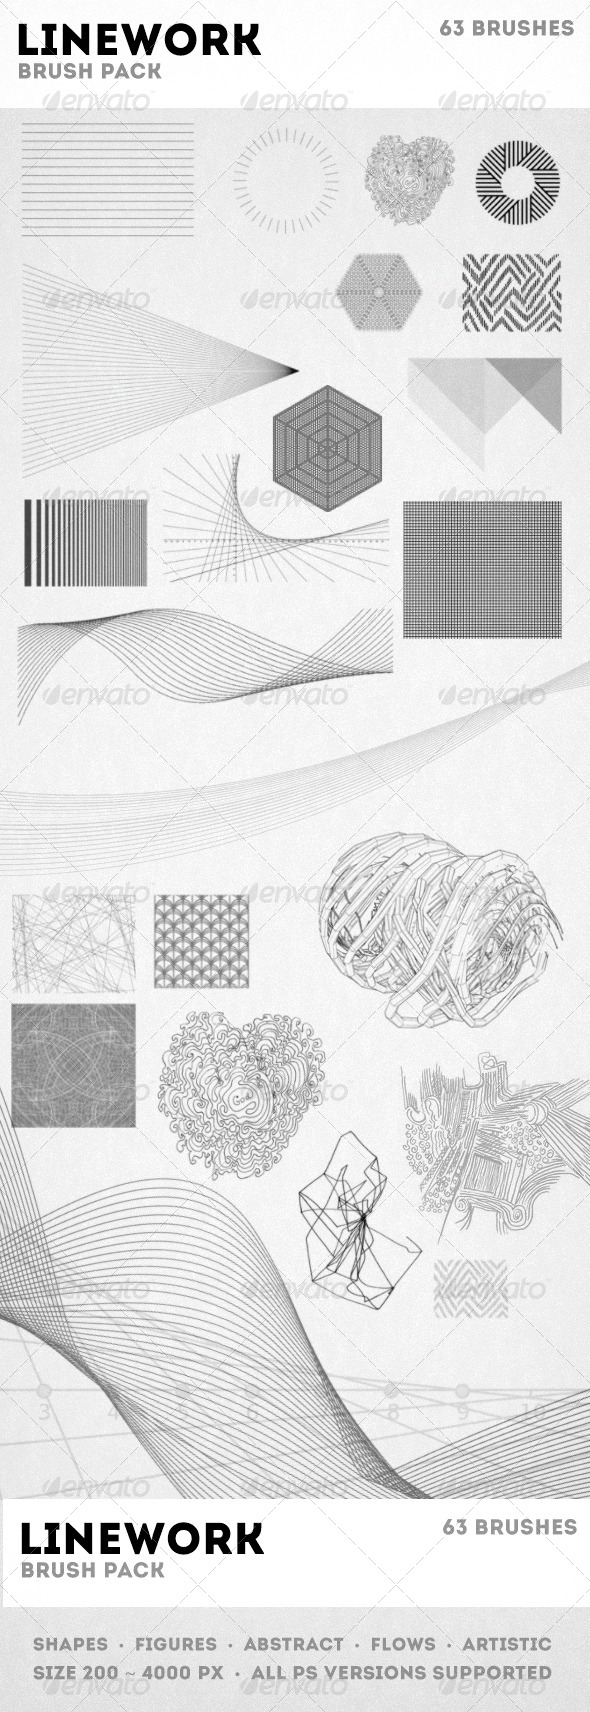 GraphicRiver Linework Brushes Pack 7623328